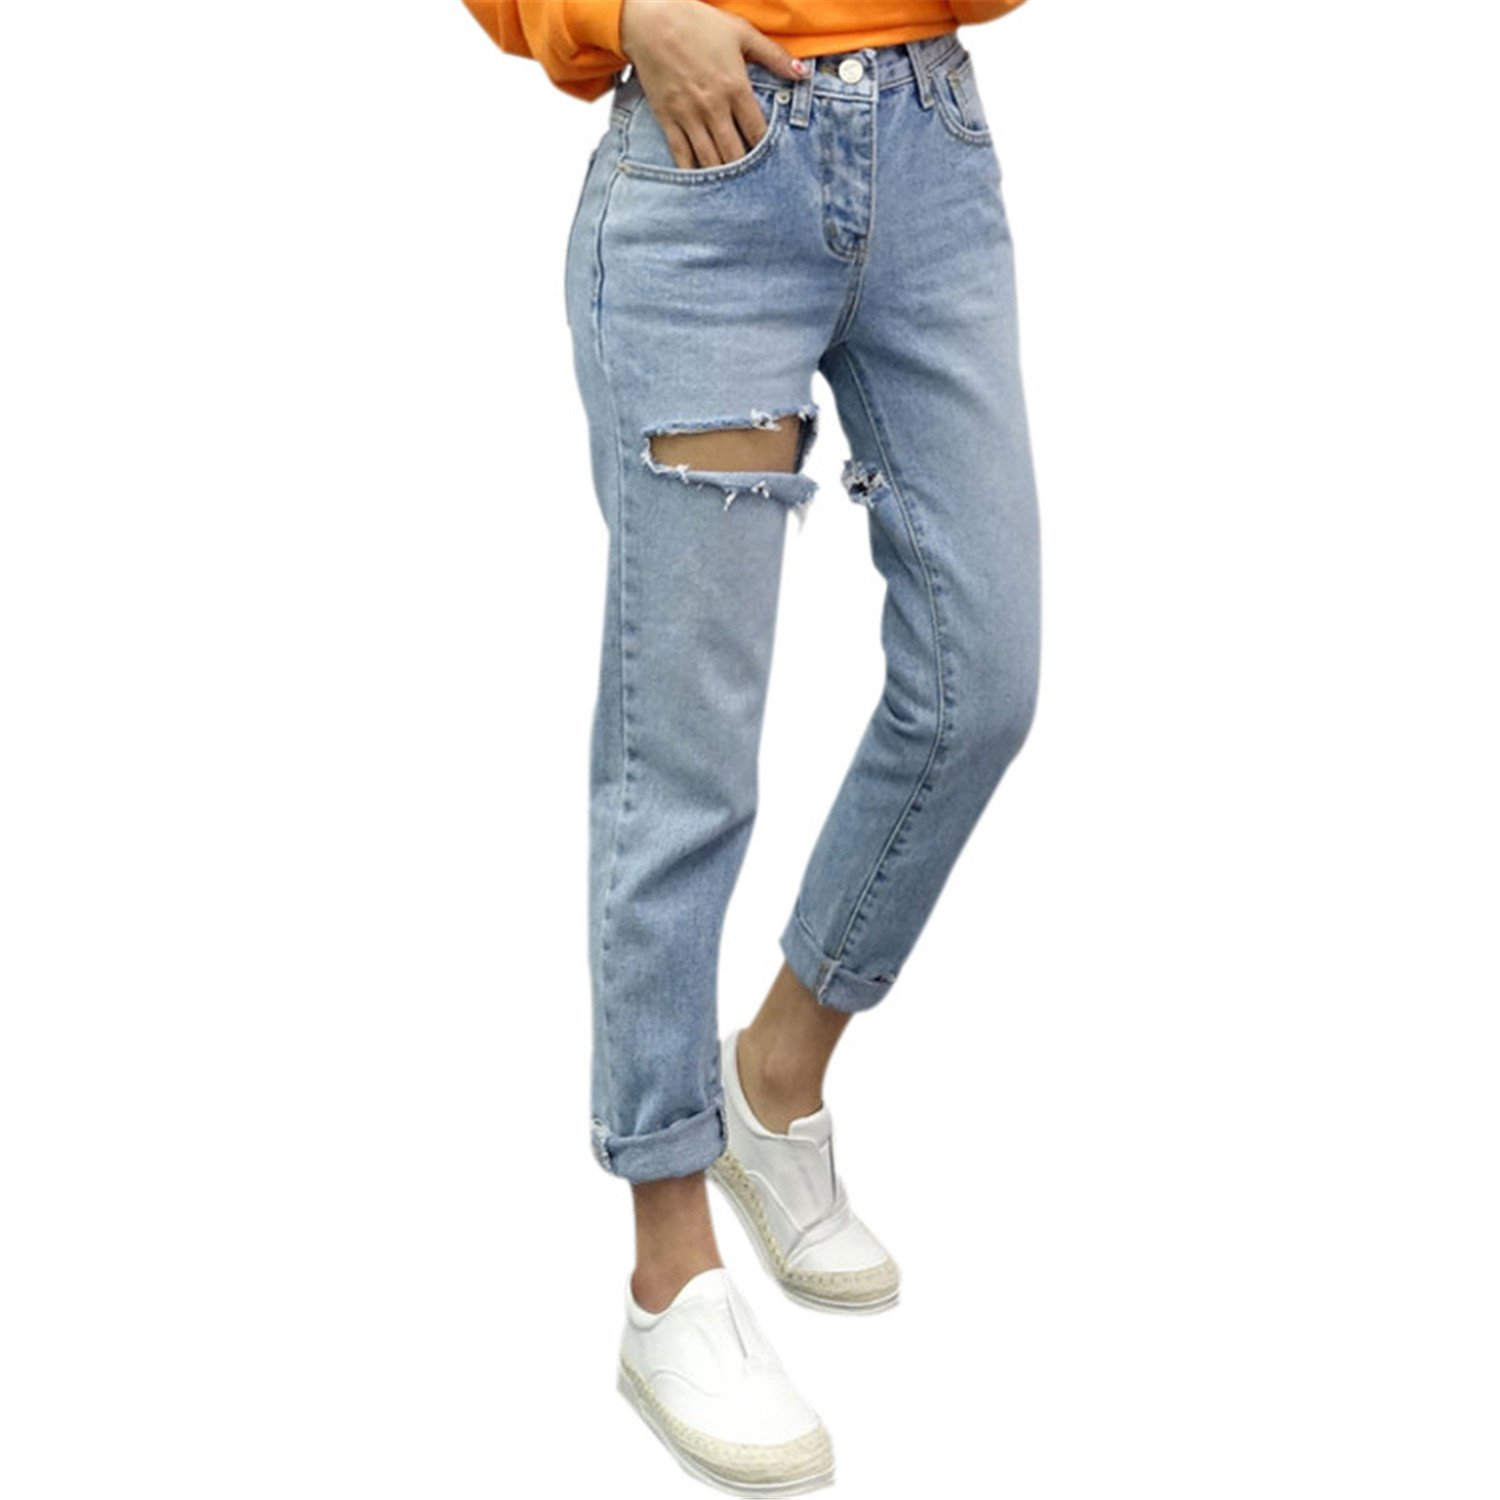 Hoared 2017 Summer Ripped Big Rip Hole Jeans Woman Casual Mom Jeans Women Jeans Pants Blue L